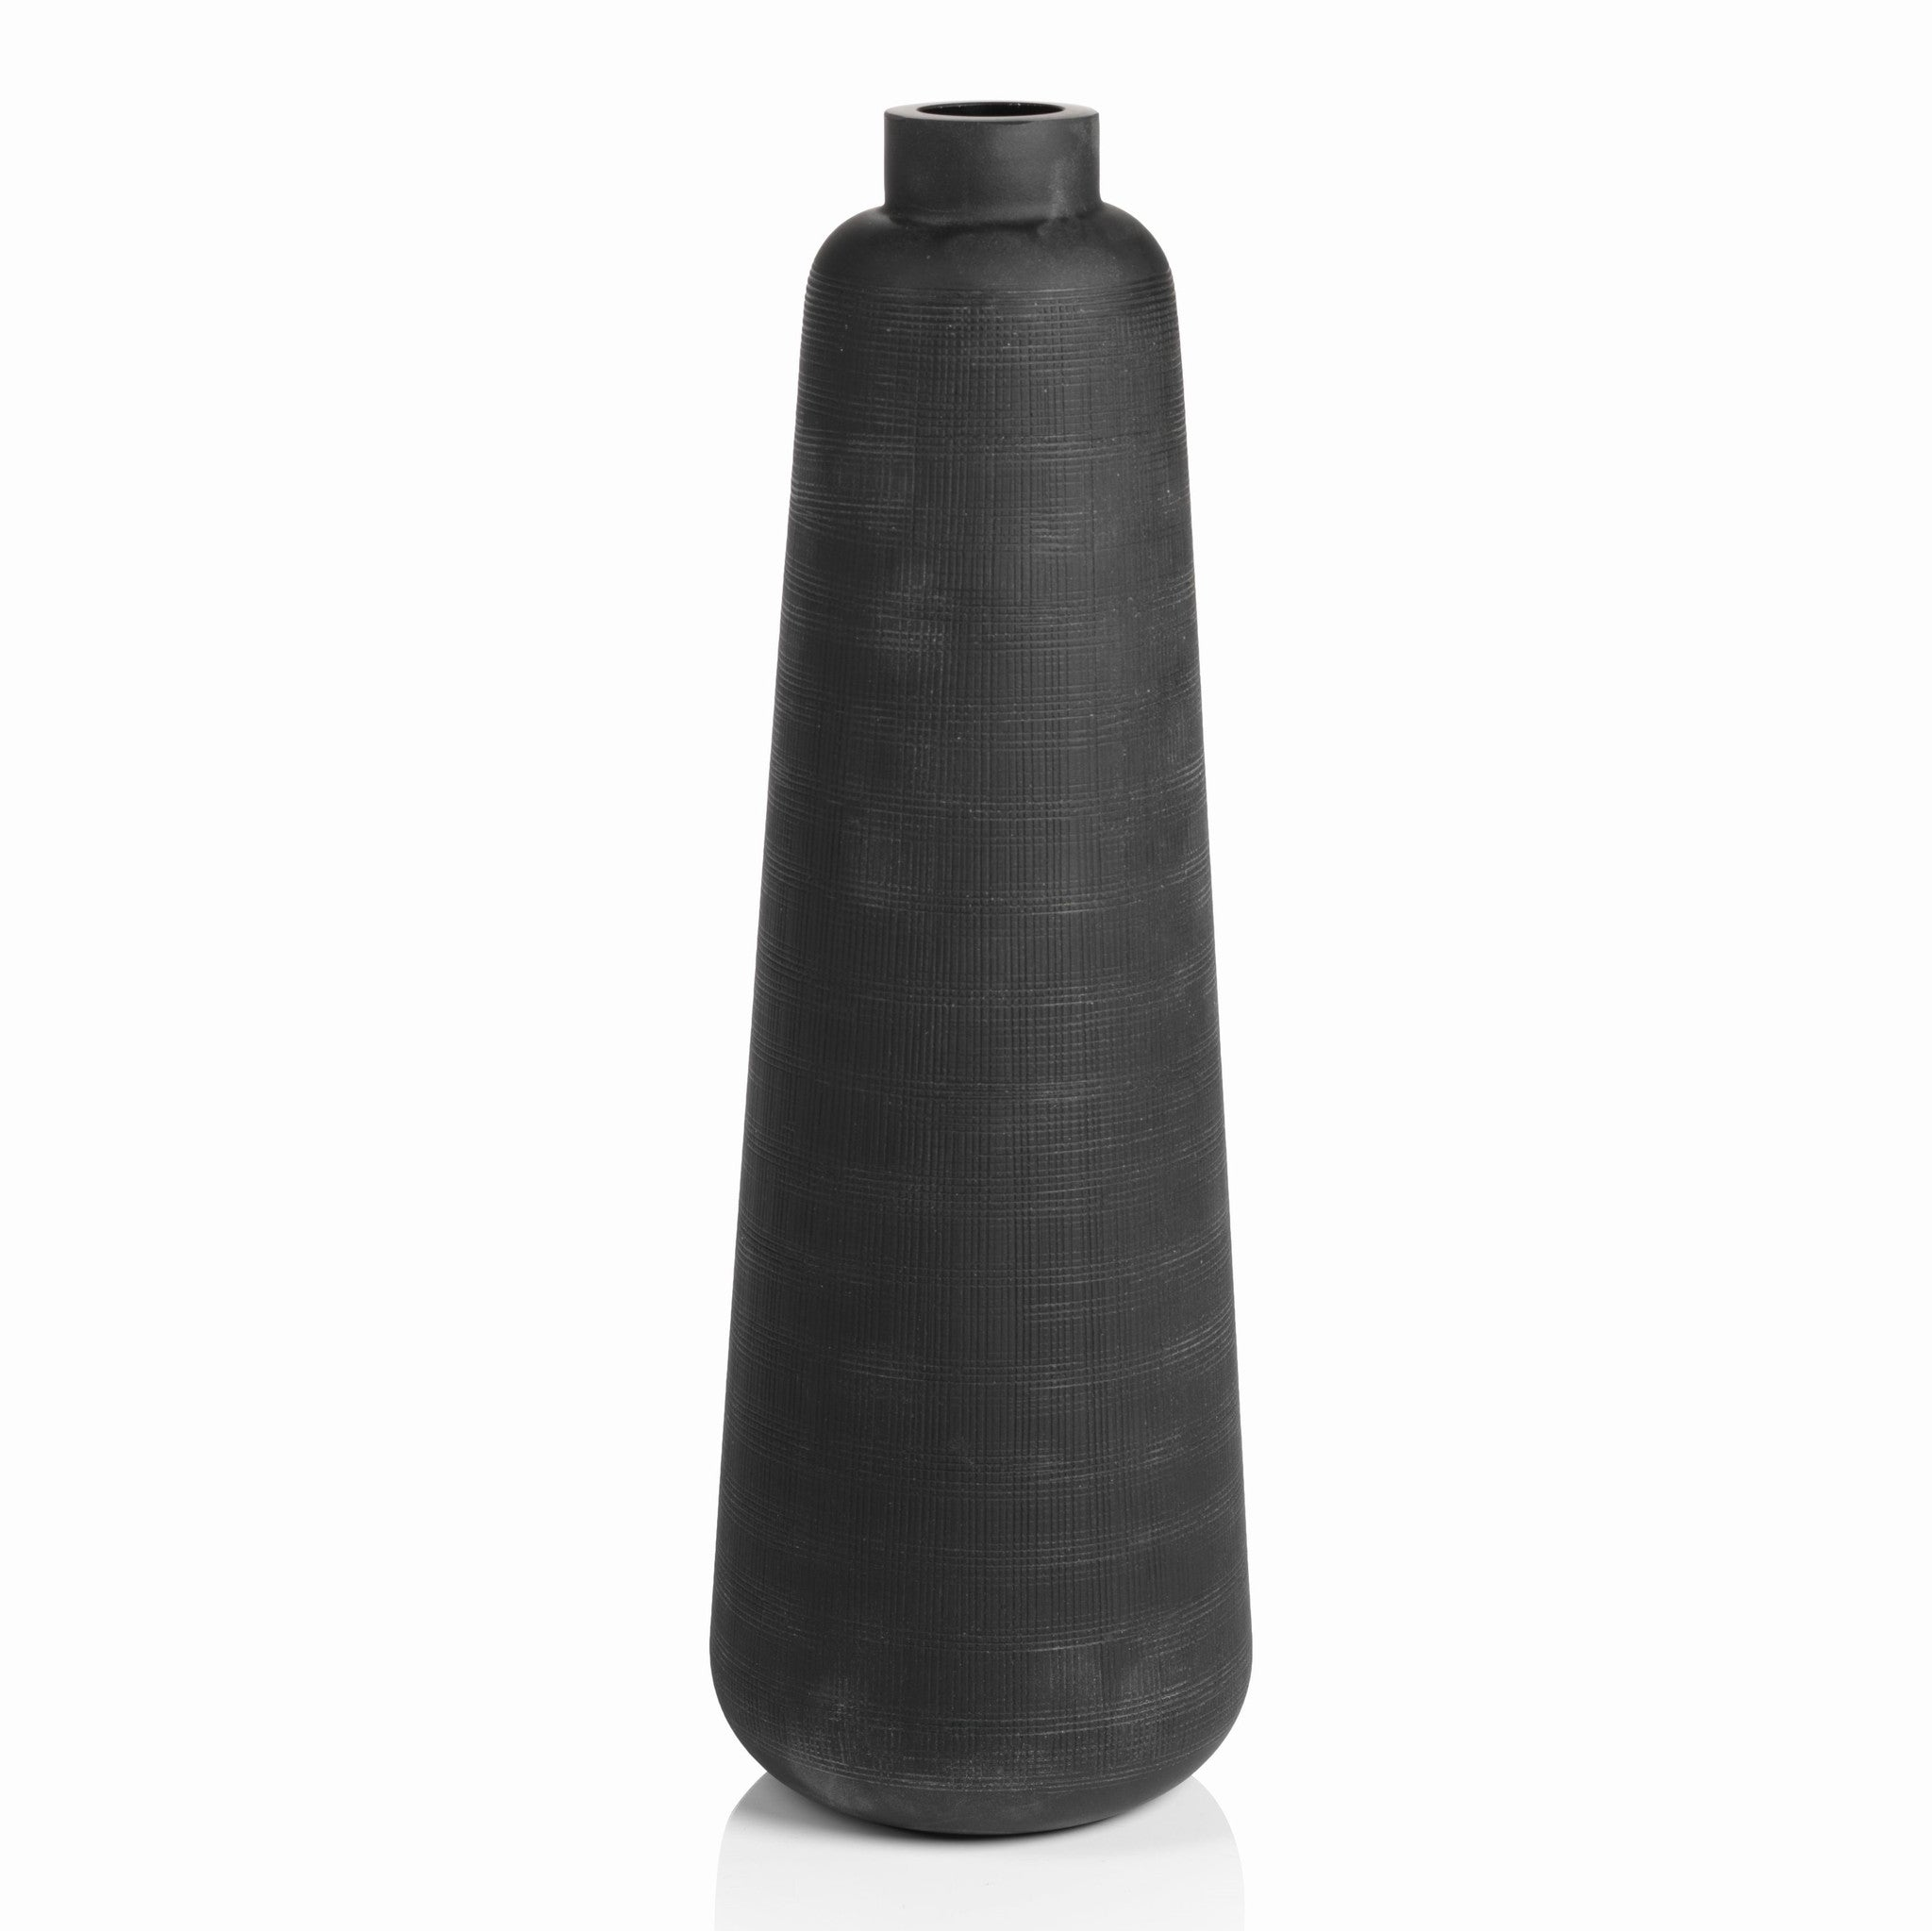 Tall Etched Black Glass Vase - CARLYLE AVENUE